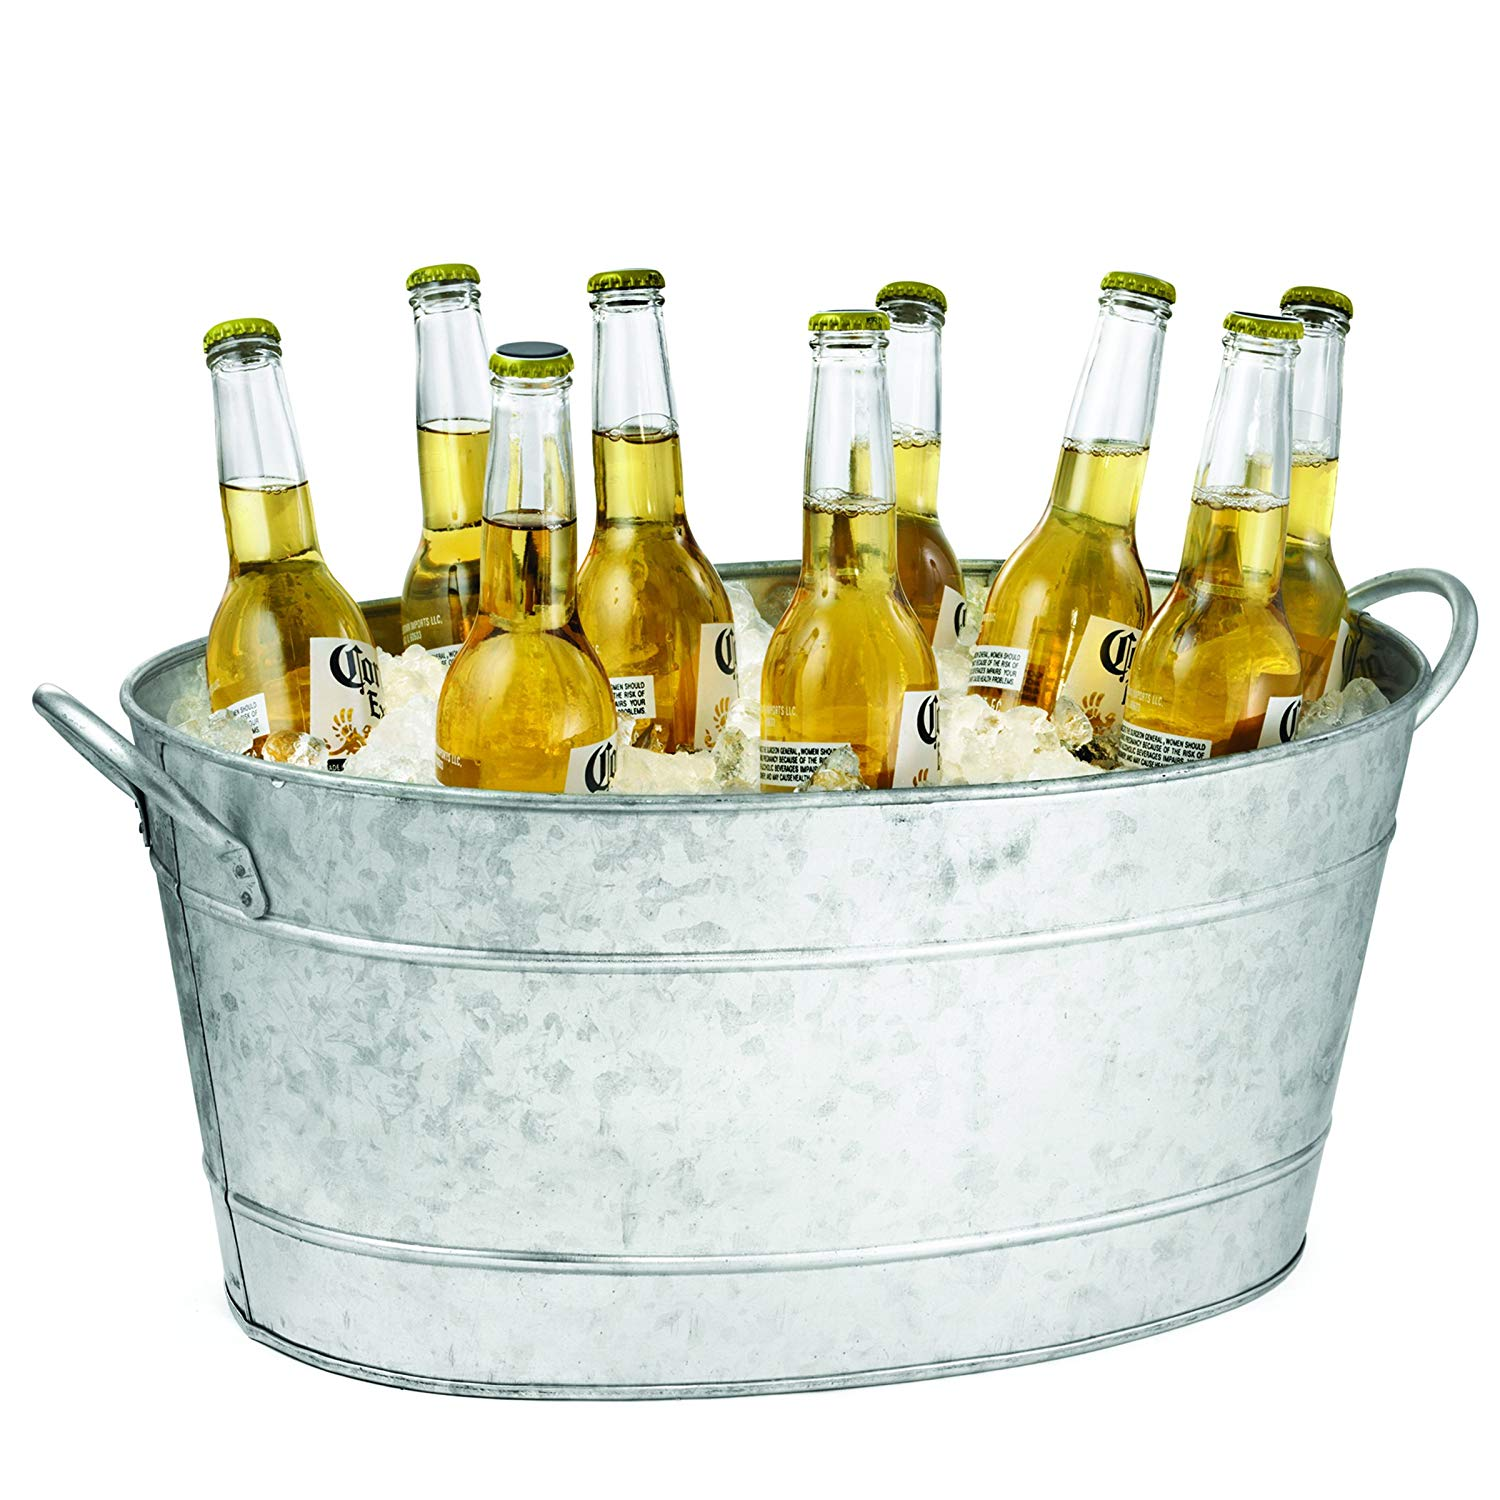 5.5 Gallons Galvanized Oval Beverage Tub